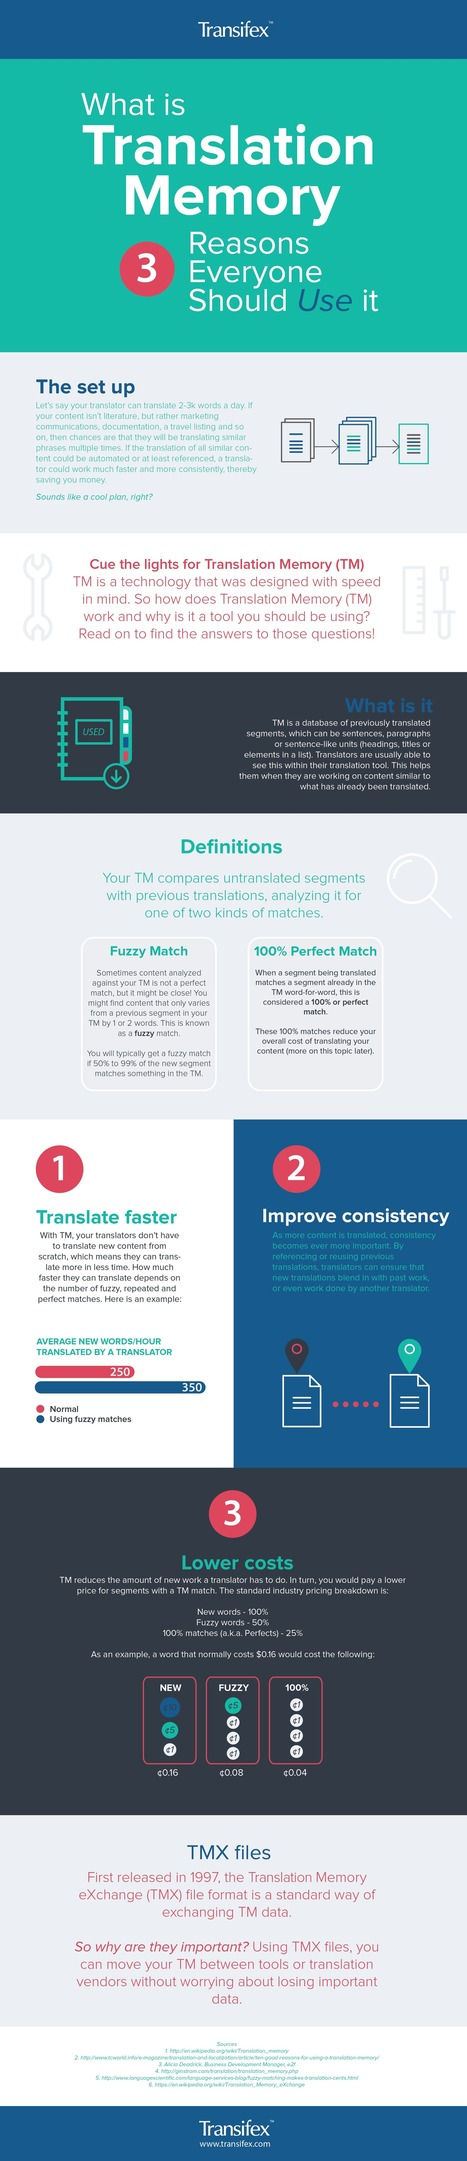 Infographic: What is Translation Memory - Transifex | Translation Memory | Scoop.it